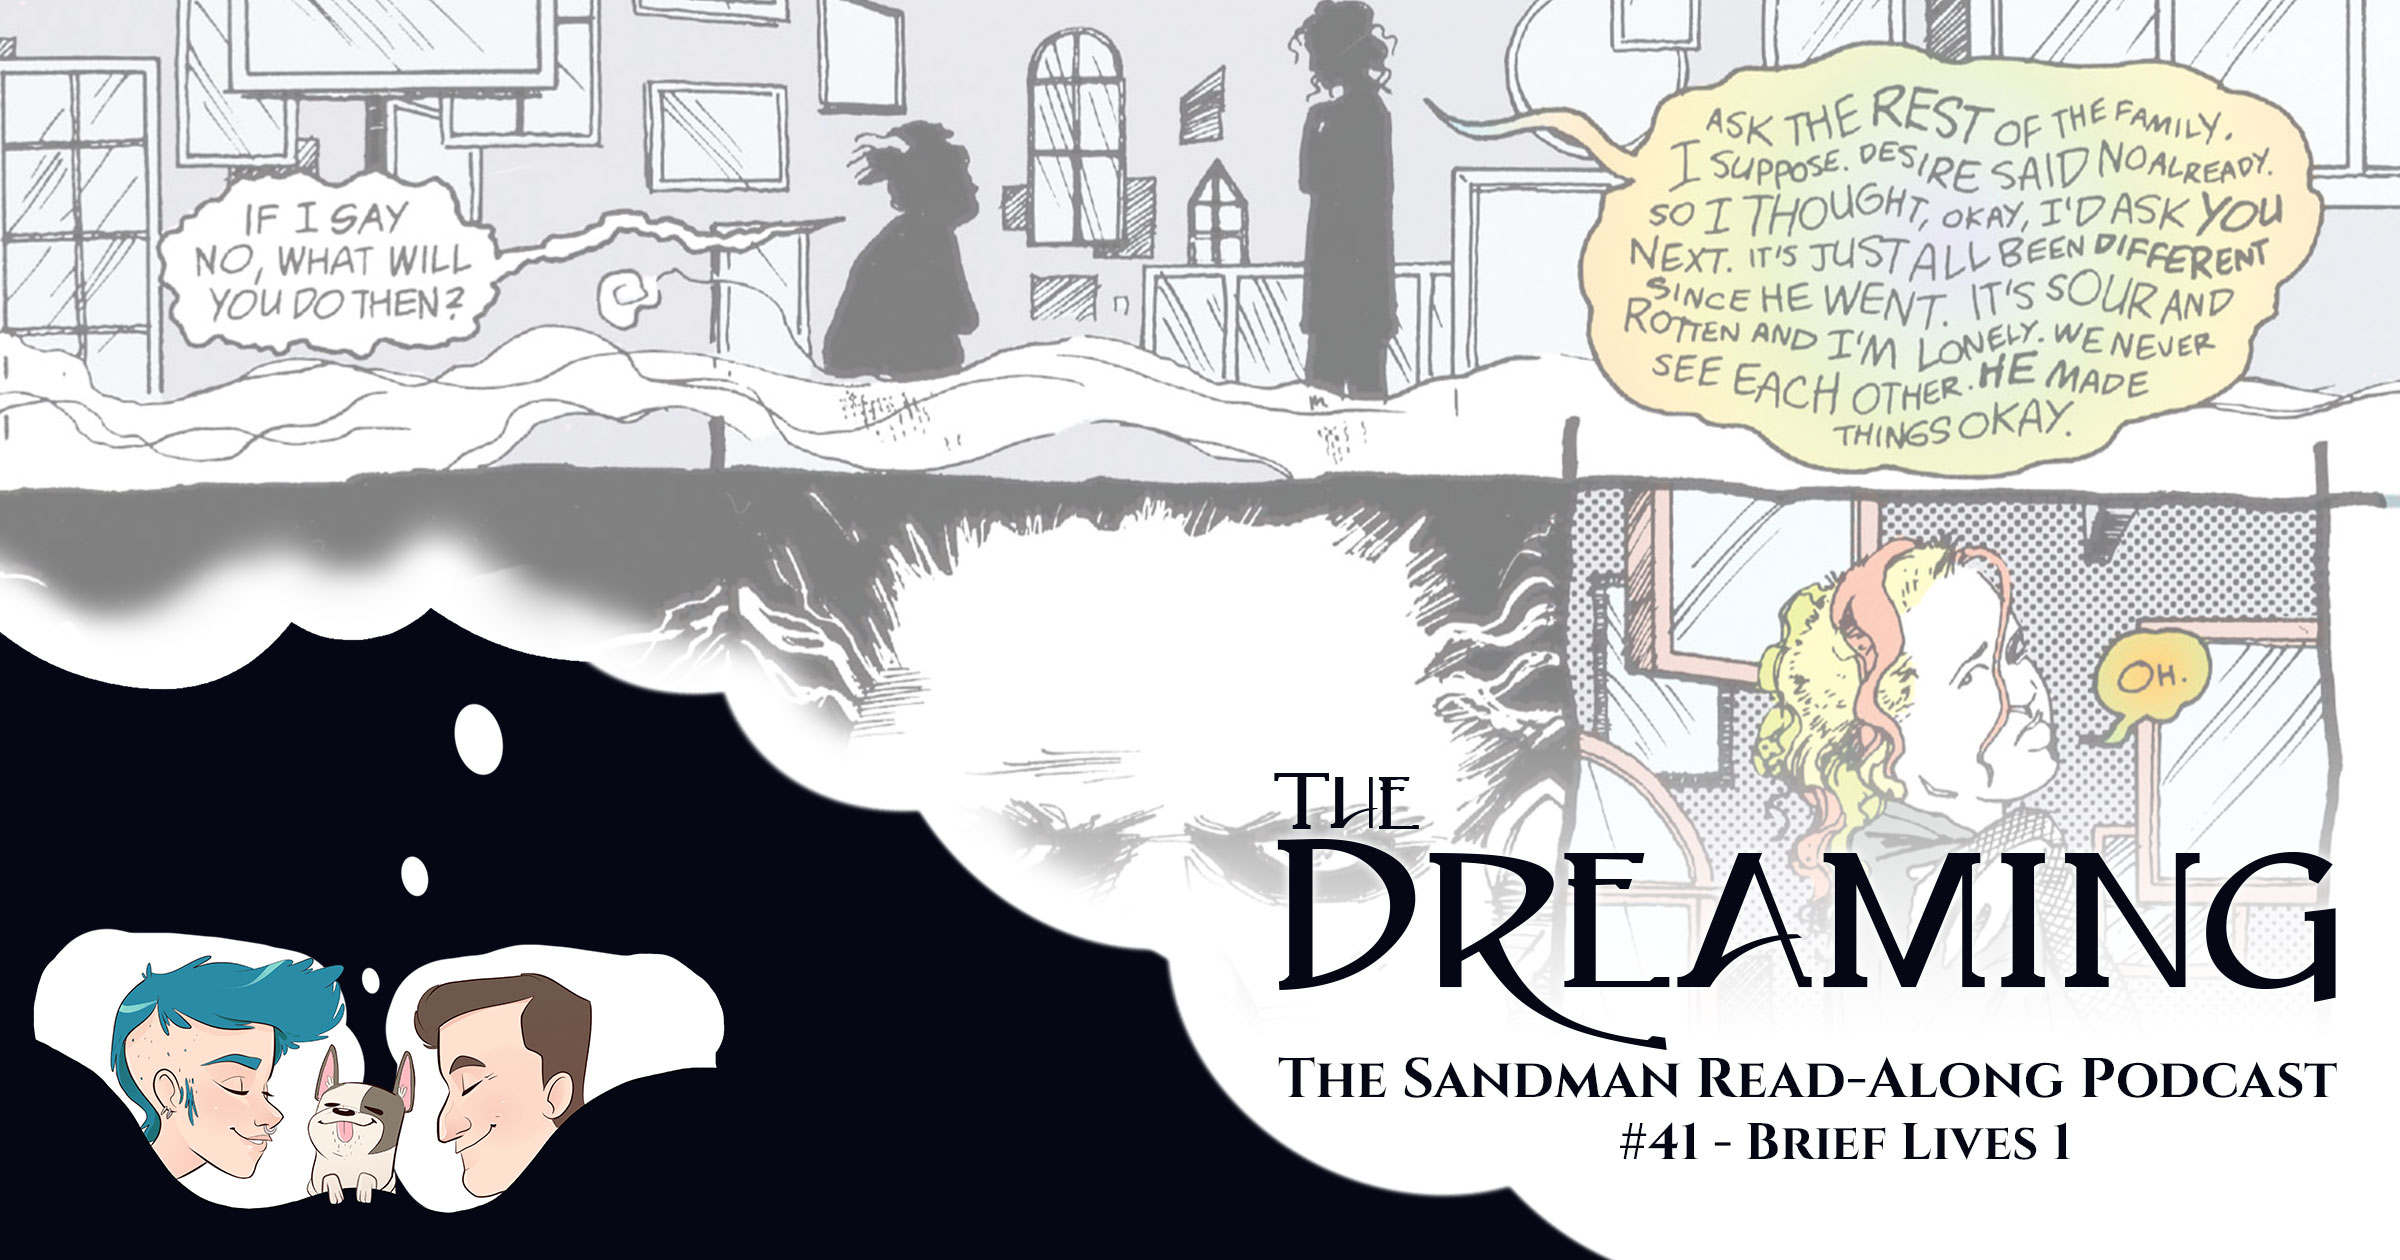 thedreaming-43-sandman41-titlecard